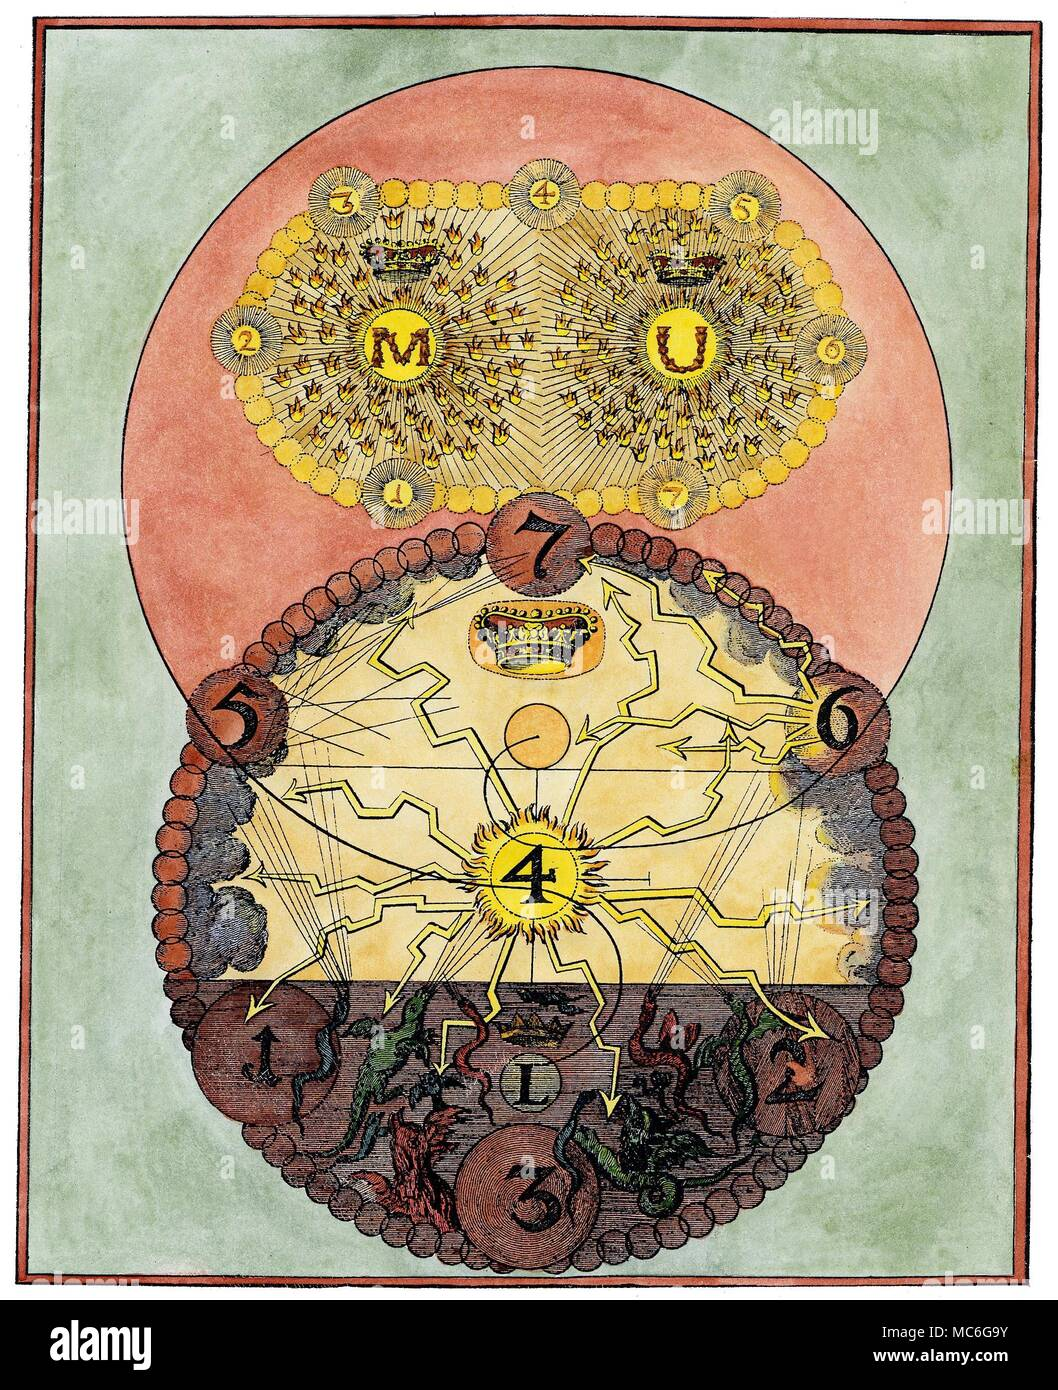 SYMBOLS - OCCULT ART - ROSICRUCIANS One of a series of influential